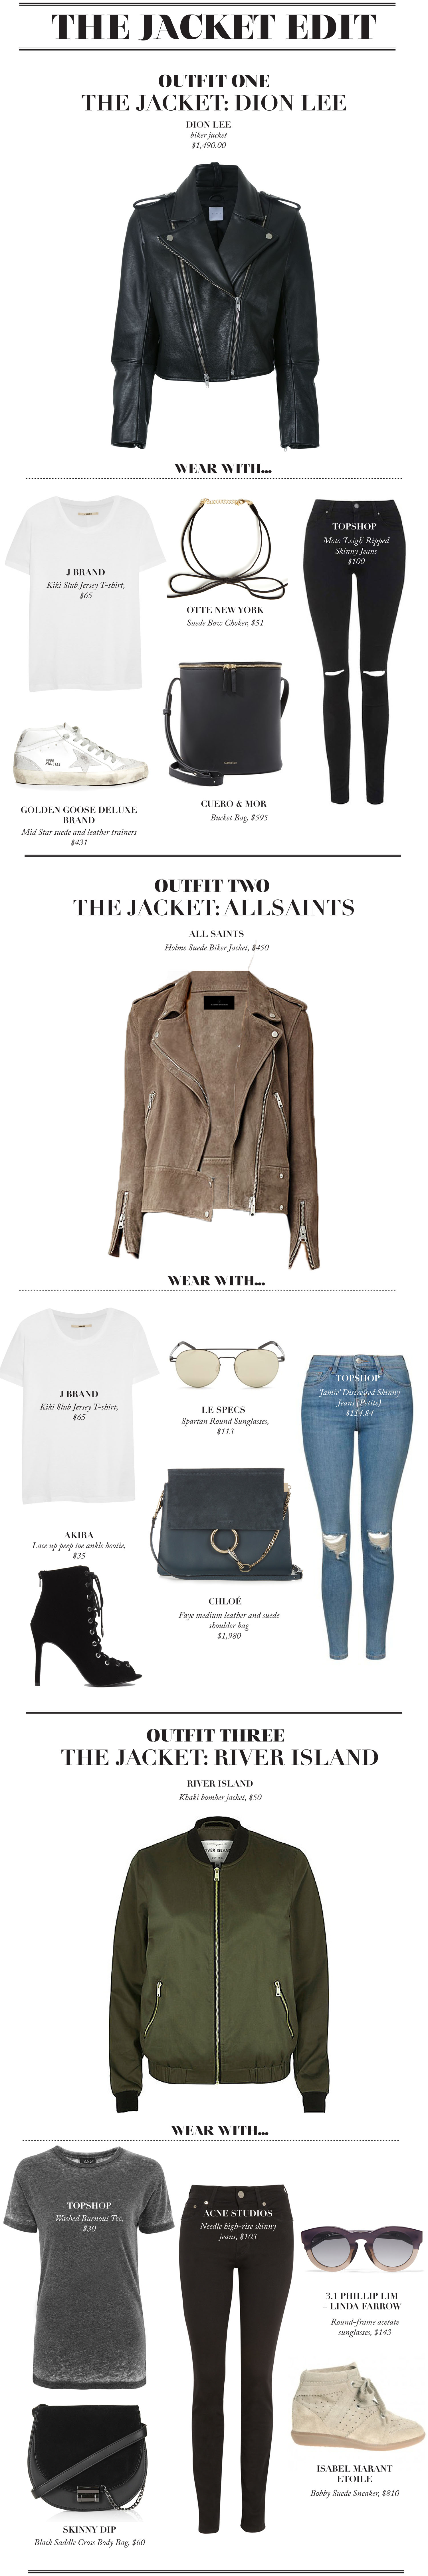 """Nothing haunts us more than the items we miss out on purchasing! Shop our """"Jacket hit list"""" available from Lyst that sells out in a blink of an eye, you better jump on quickly..."""